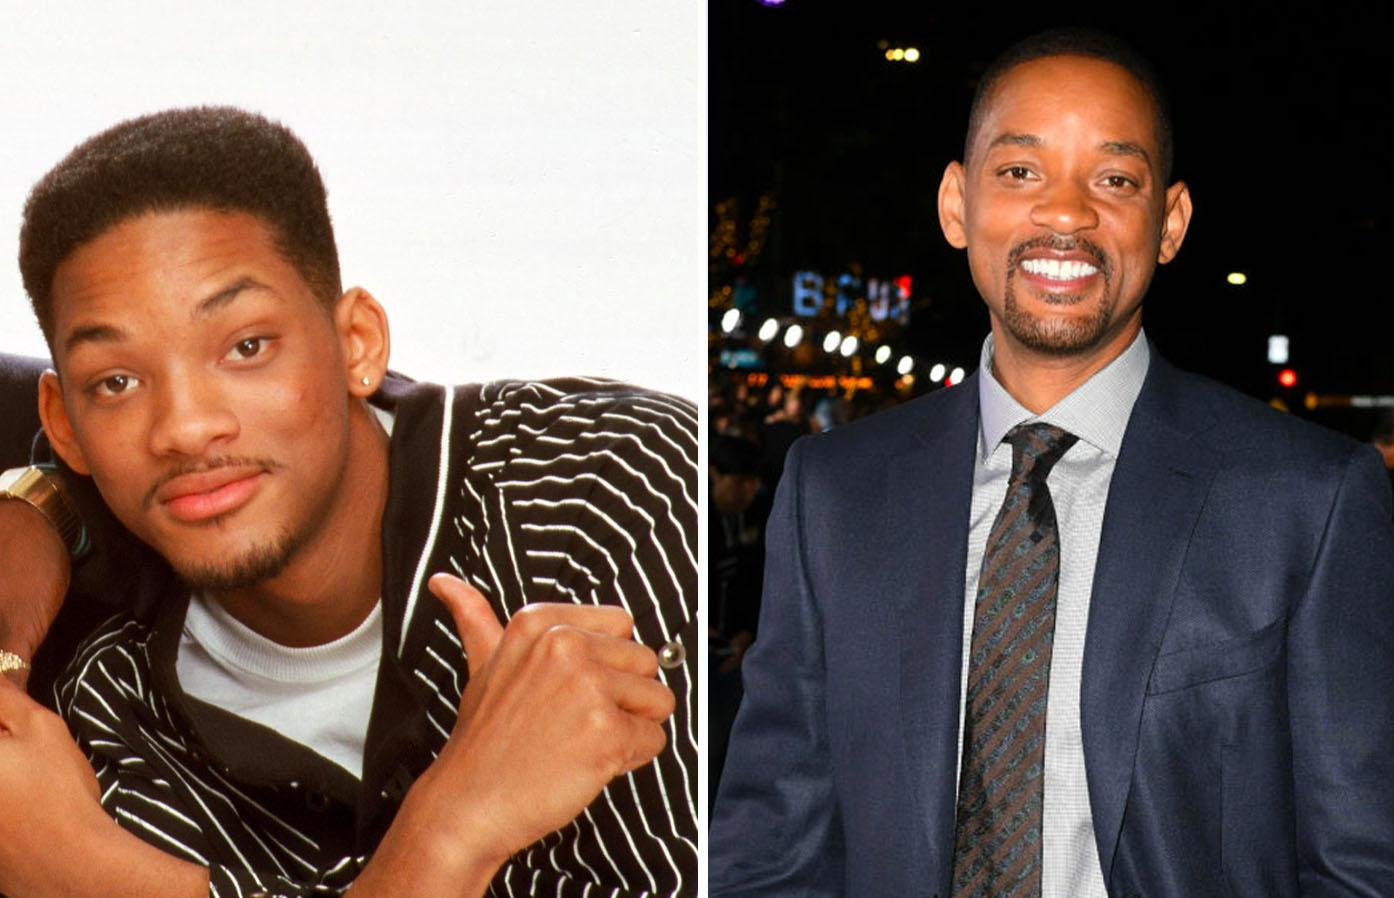 will-smith-now-1540924828427-1540924830216.jpg